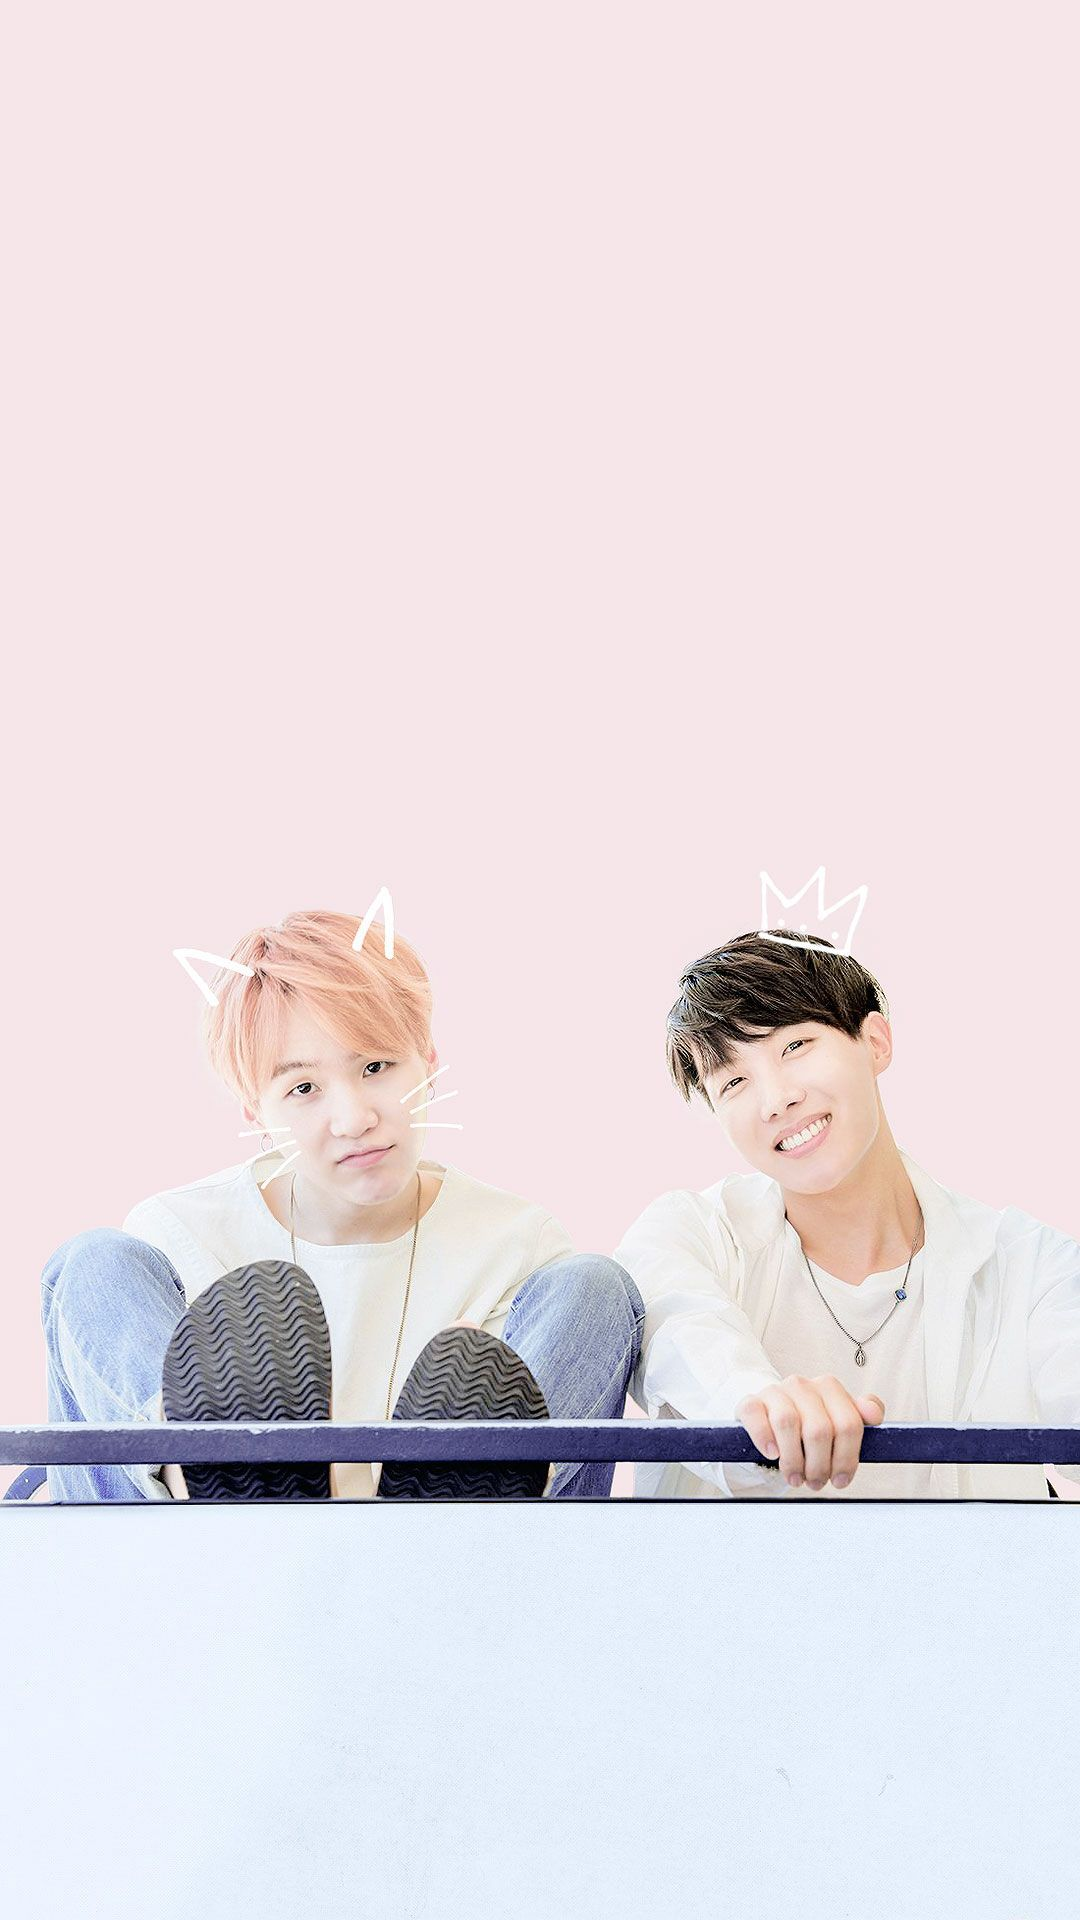 Bts - Bts Jhope And Suga , HD Wallpaper & Backgrounds